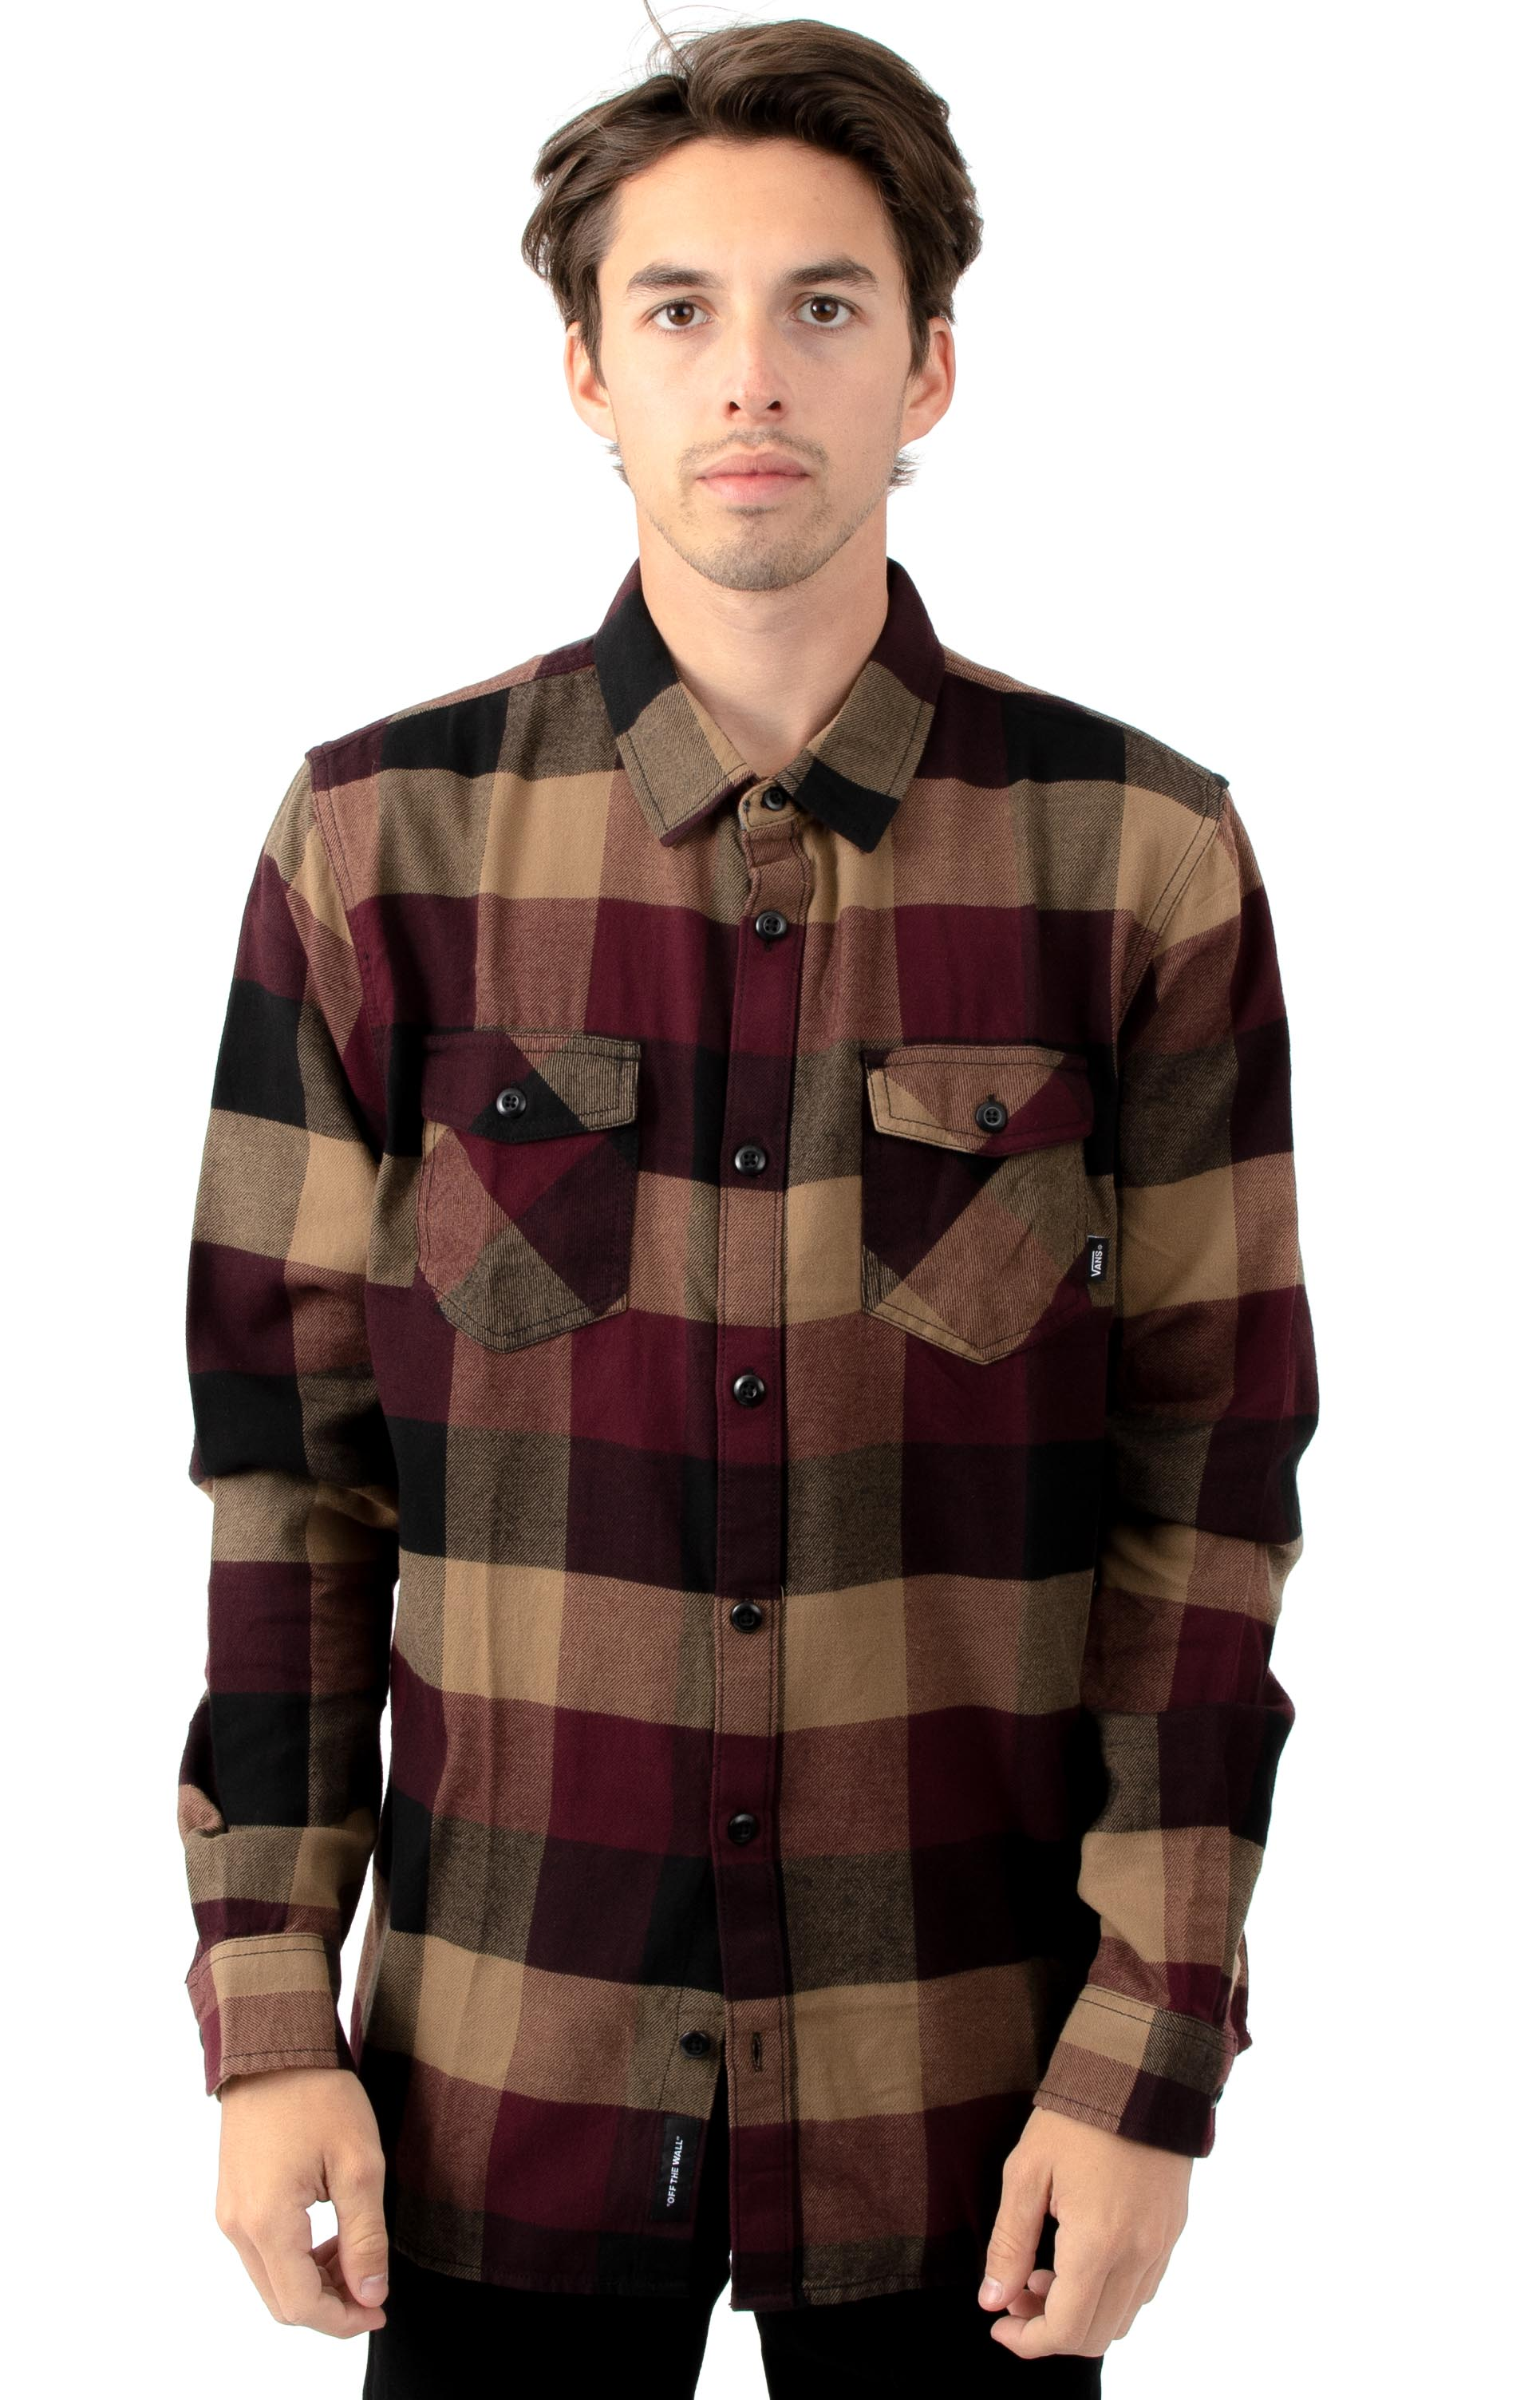 Vans, Box Flannel Button-Up Shirt - Port Royale